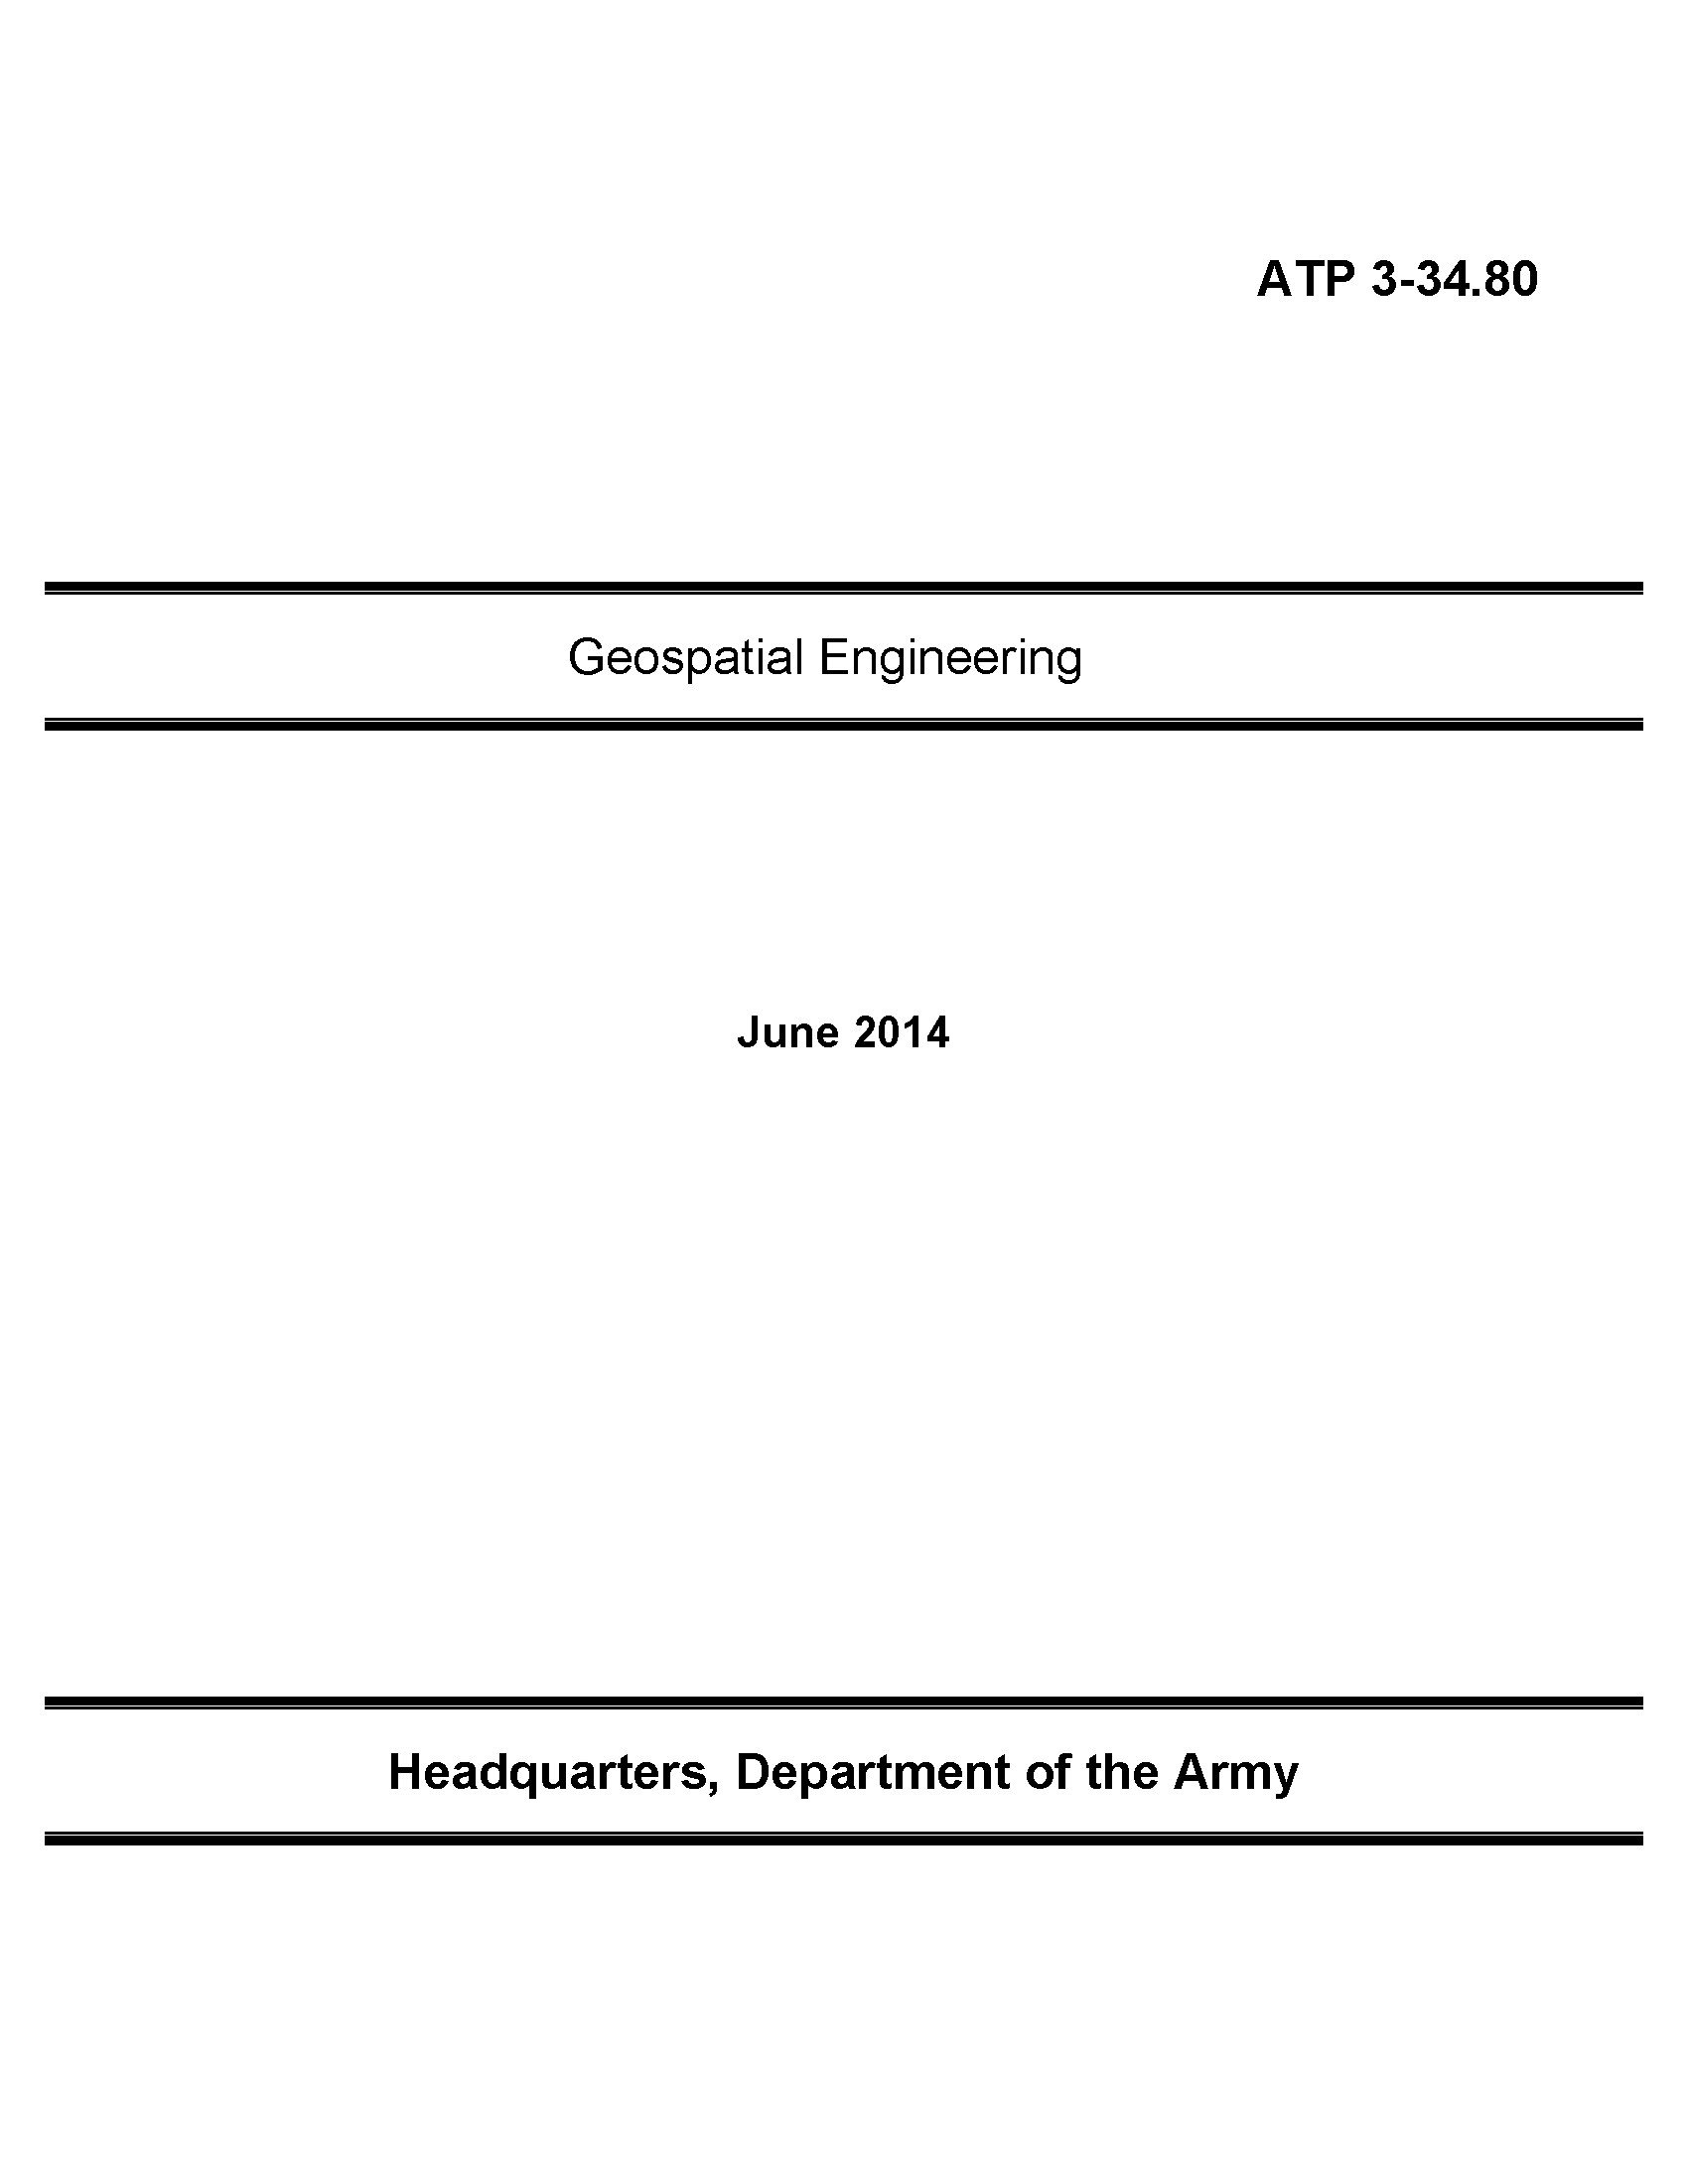 Download atp 3-34.80 (14) Geospatial Engineering, 23 June 2014 [supersedes ATTP 3-34.80] LOOSE LEAF pdf